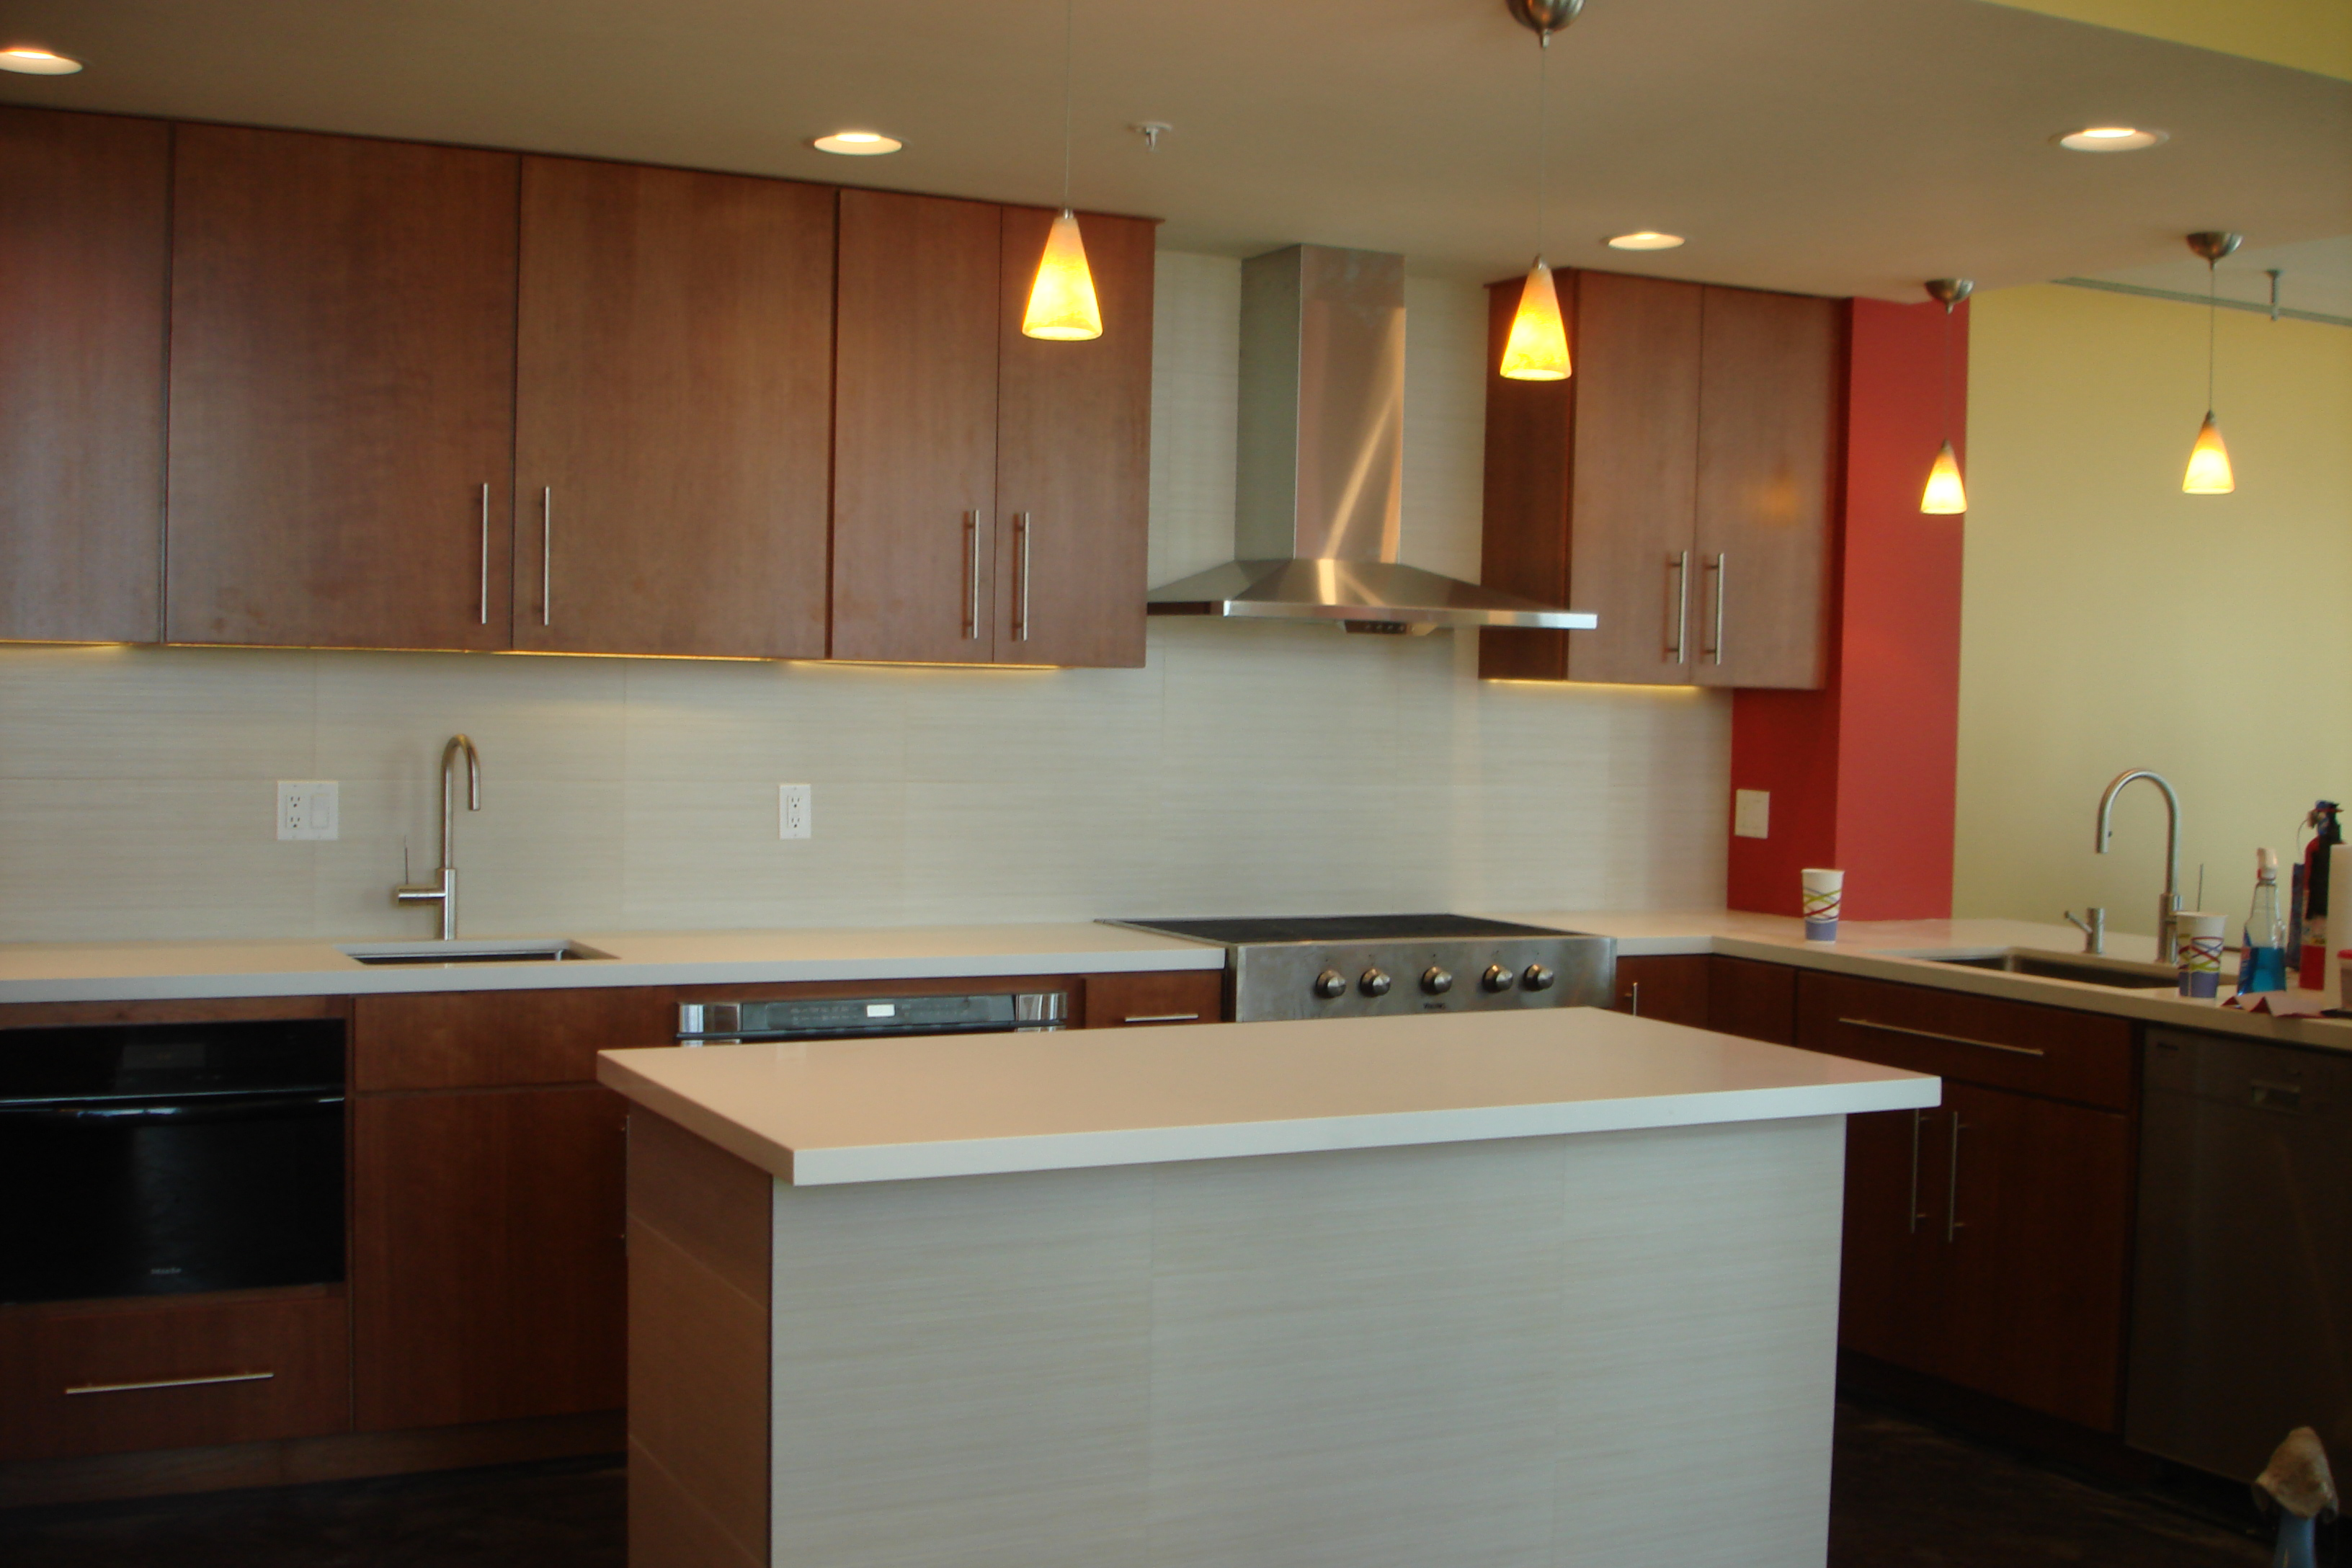 kitchen and bathroom remodeling - Kitchen And Bath Remodel San Diego